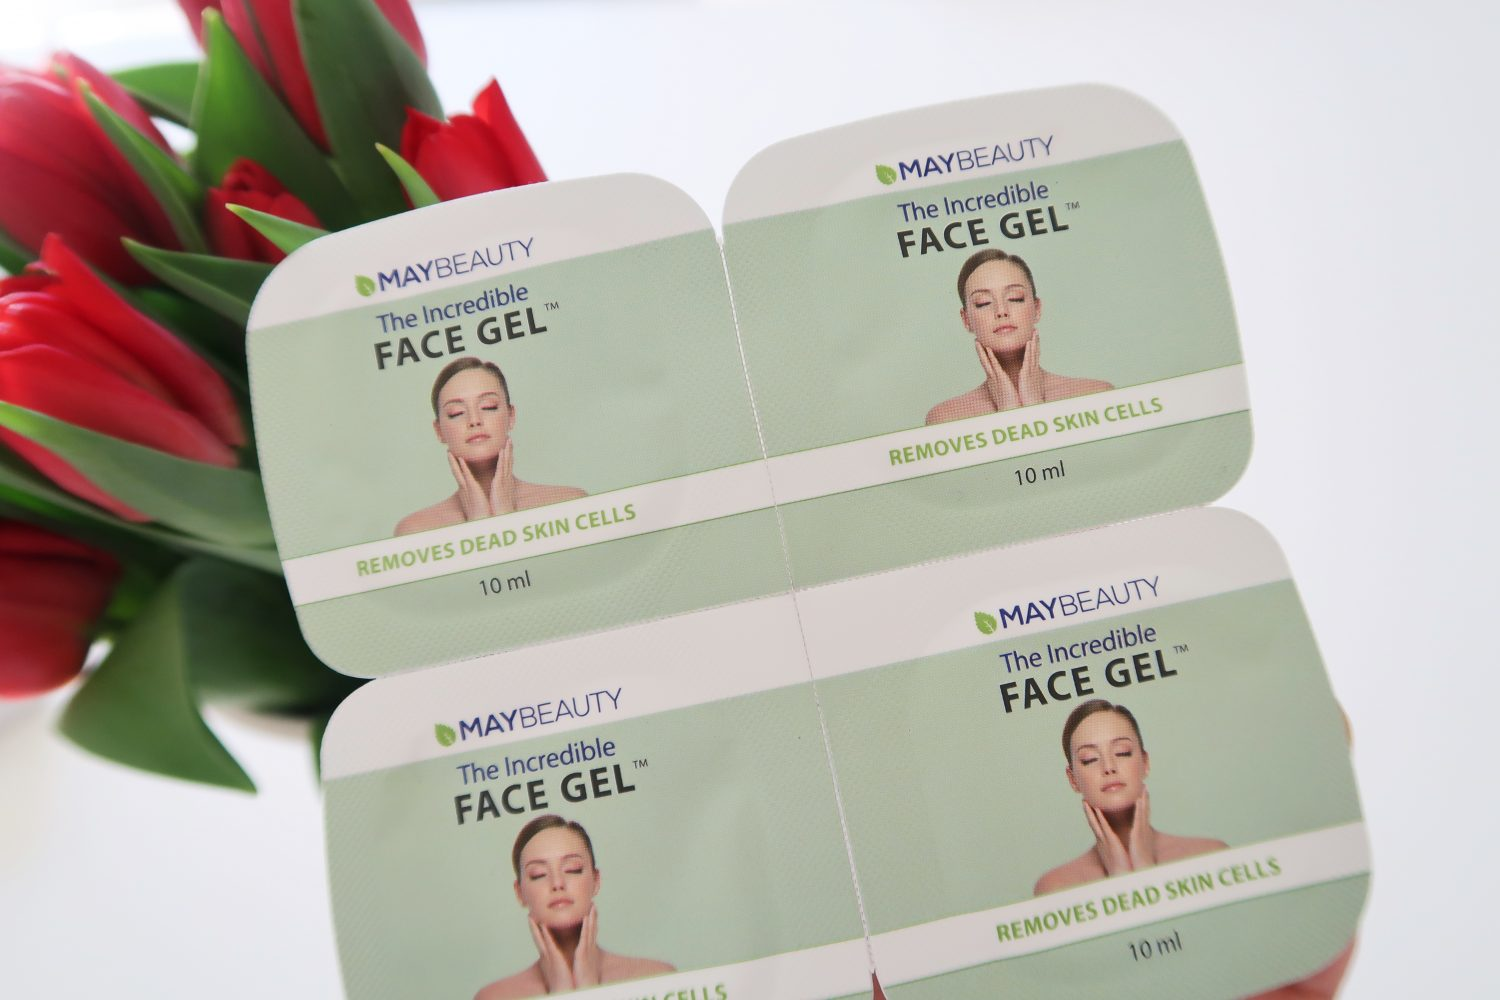 Review: Maybeauty Incredible Face Gel